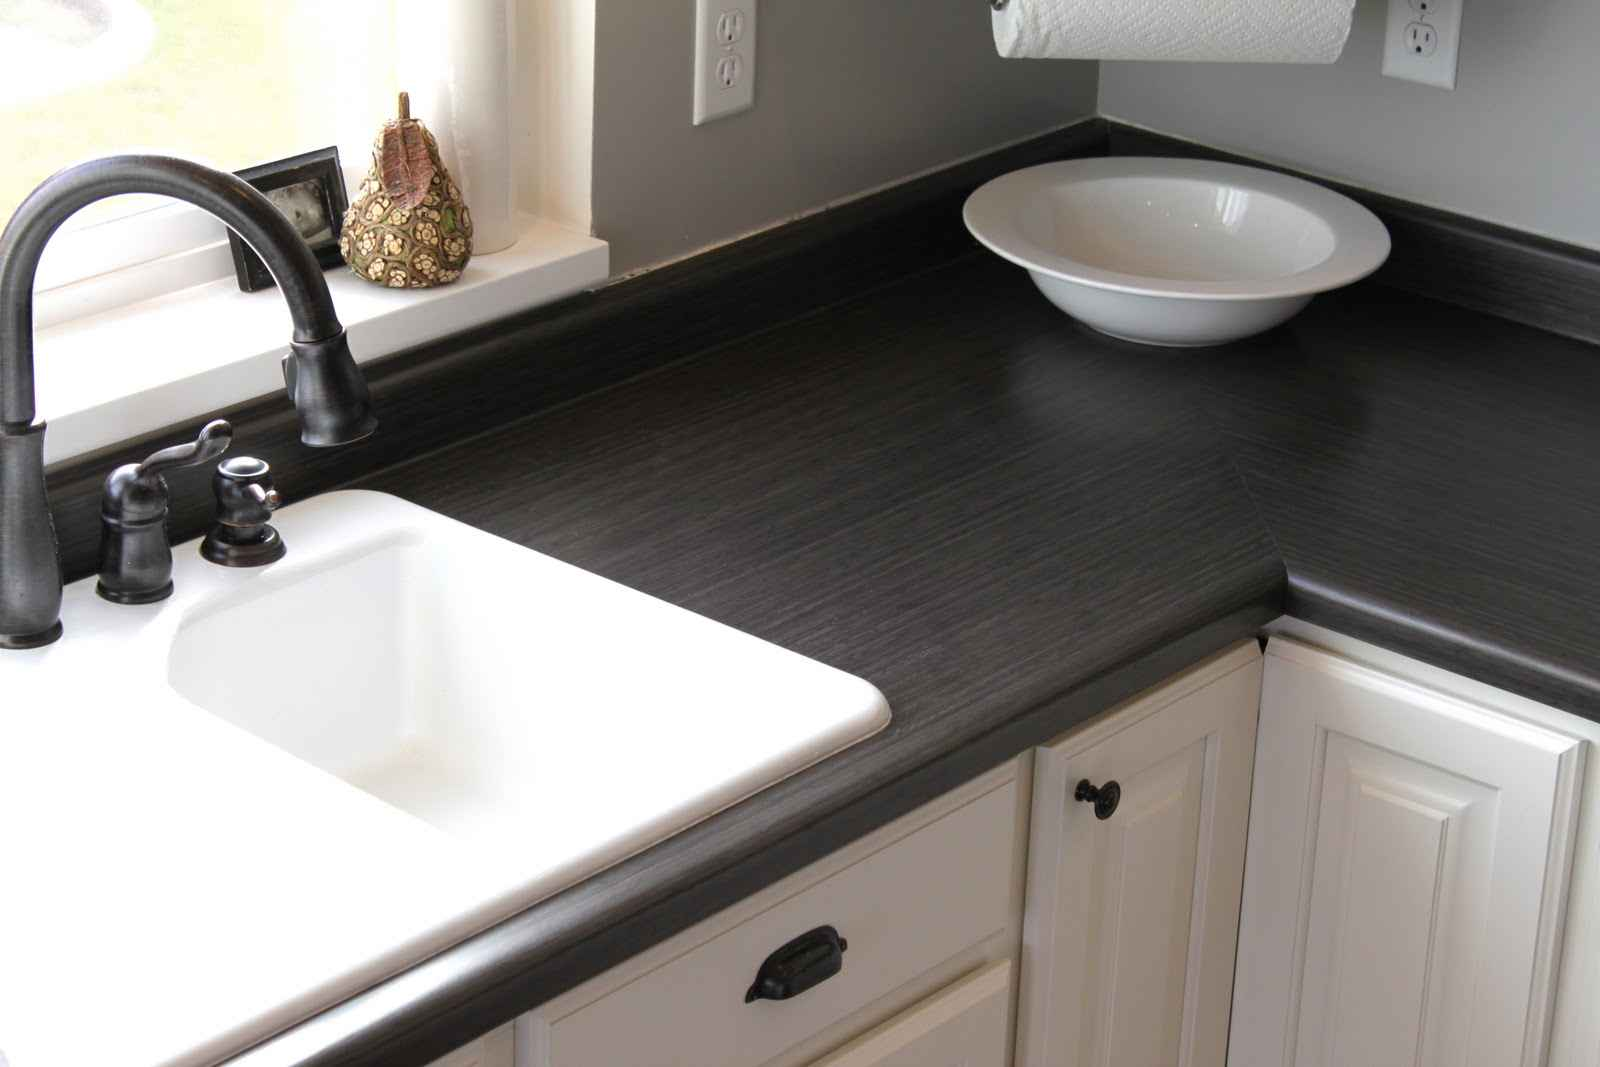 High Quality Black Wood Finish Kitchen Countertop With White Decorative Bowl A Luxurious  White Sink With Black